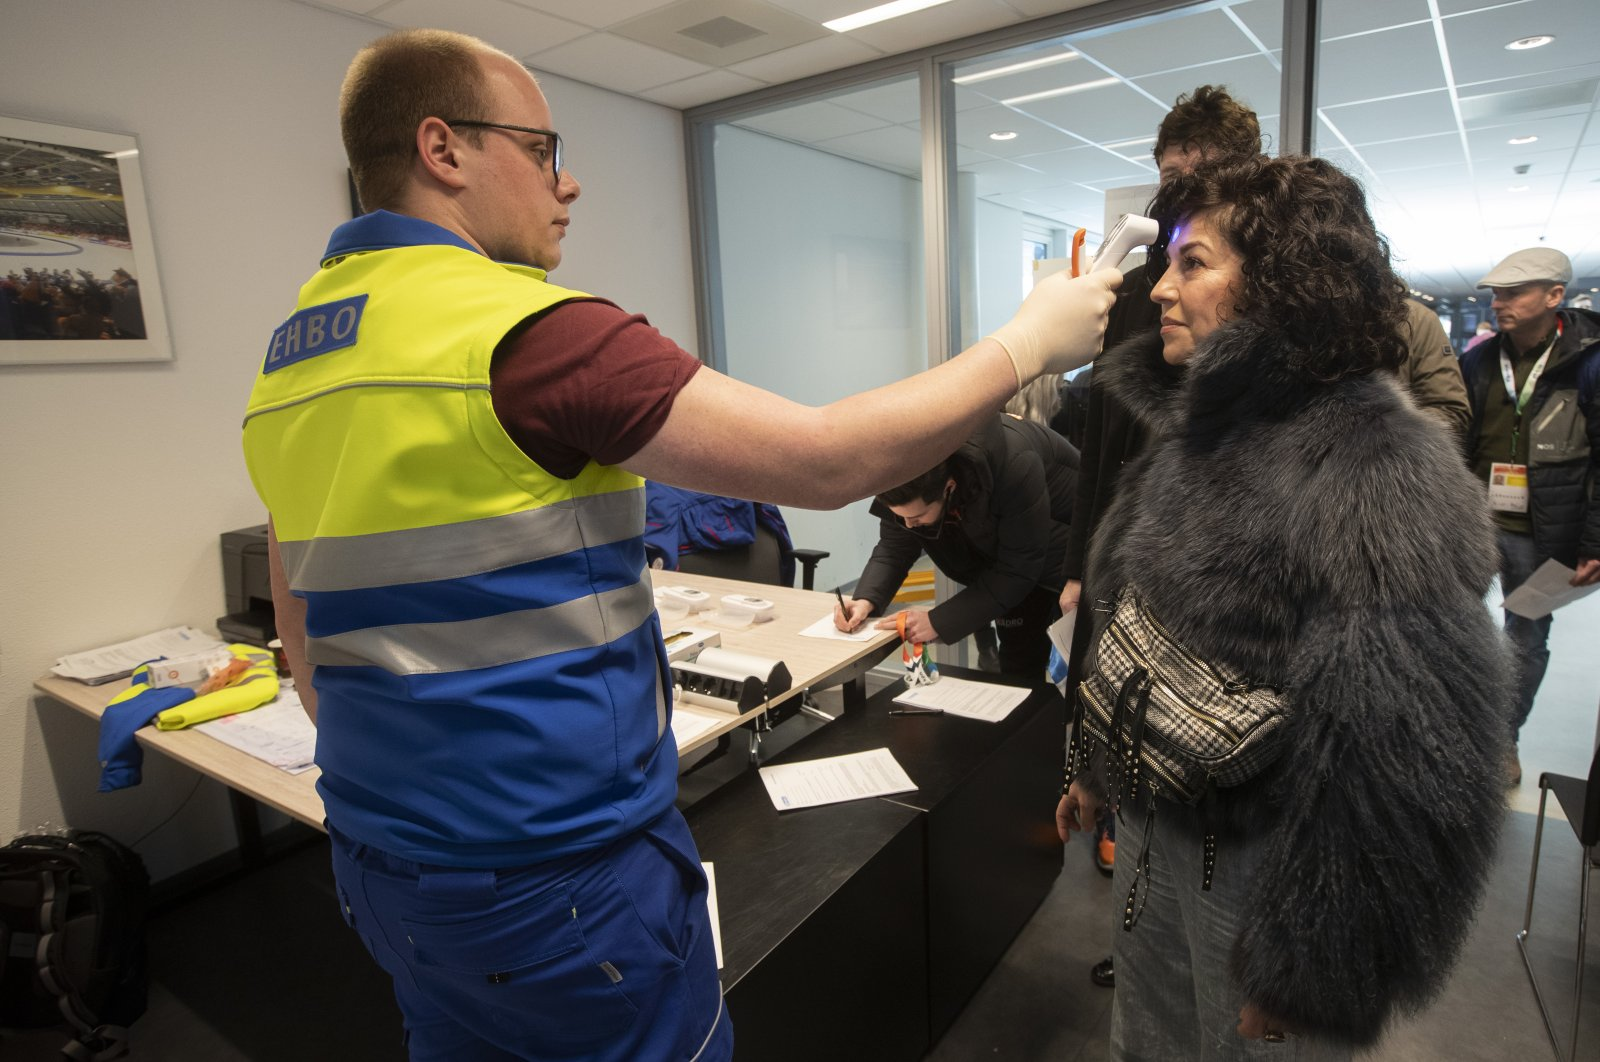 A medical team member checks an accredited person's body temperature and checks for possible symptoms of the coronavirus prior to the final of World Cup speedskating at the Thialf ice arena in Heerenveen, northern Netherlands, Saturday, March 7, 2020. (AP Photo)